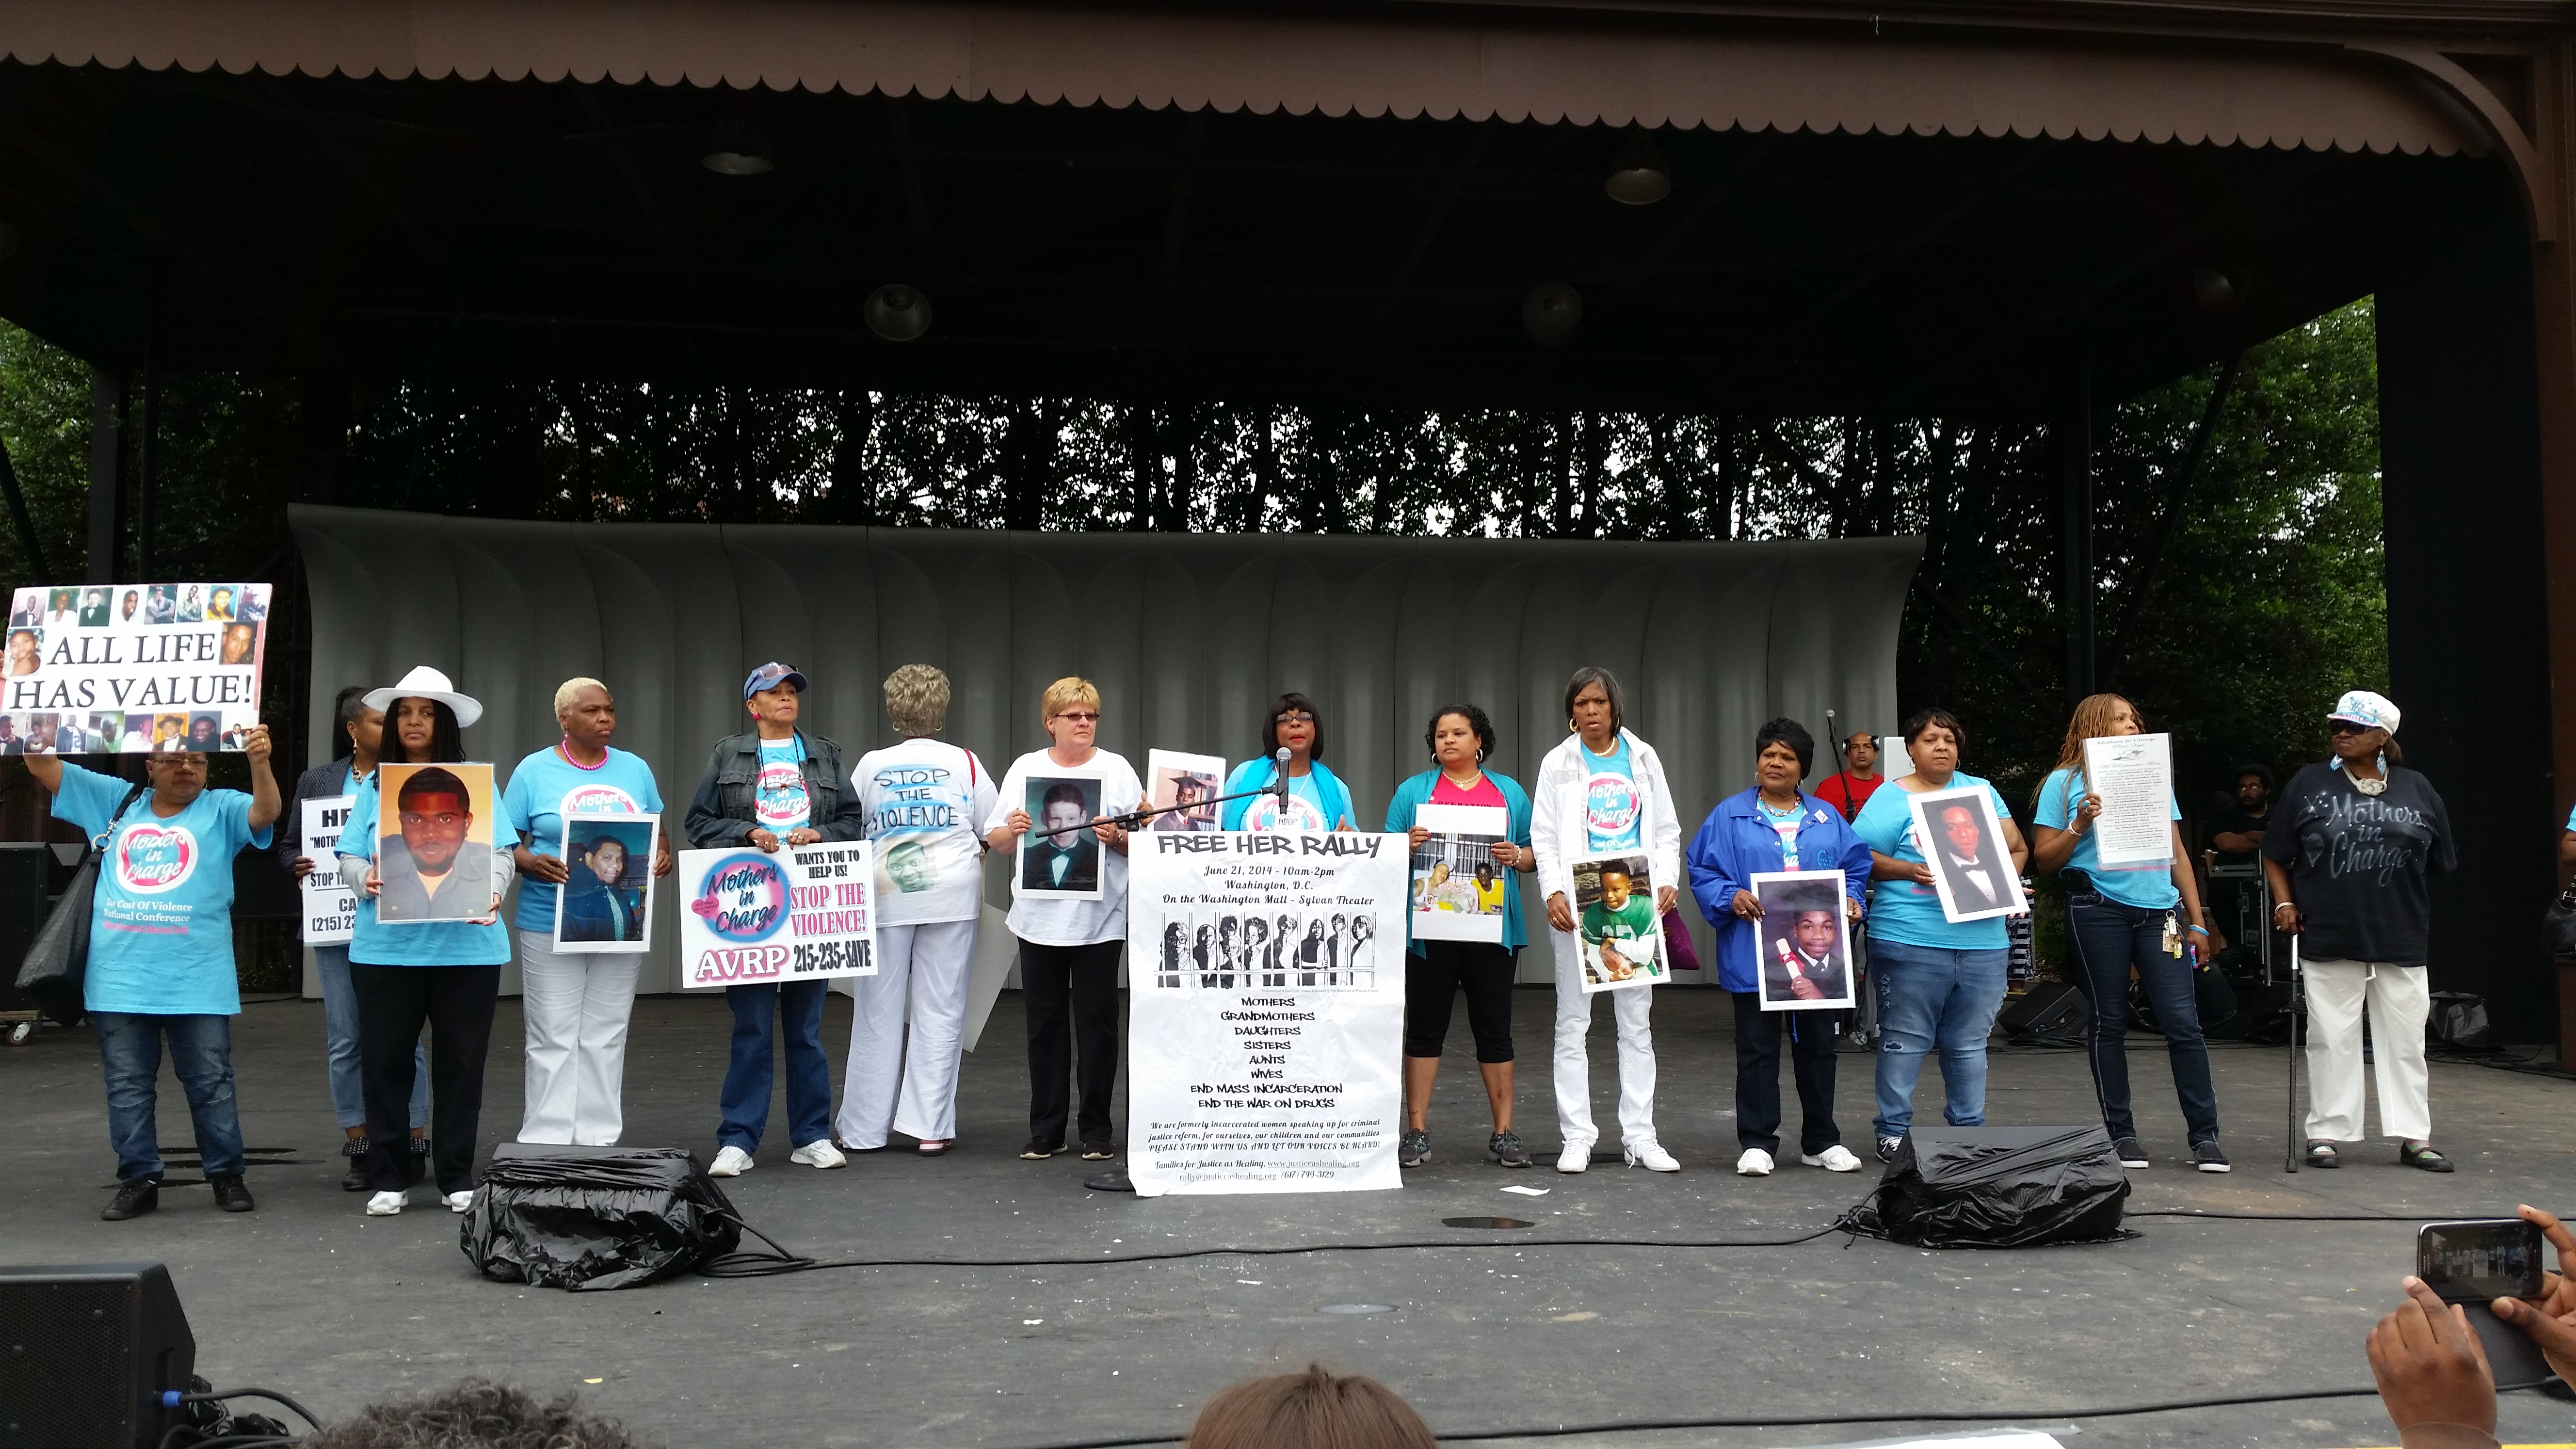 Participants in DCs Free Her Rally against mass incarceration (CREDIT: Original photo)